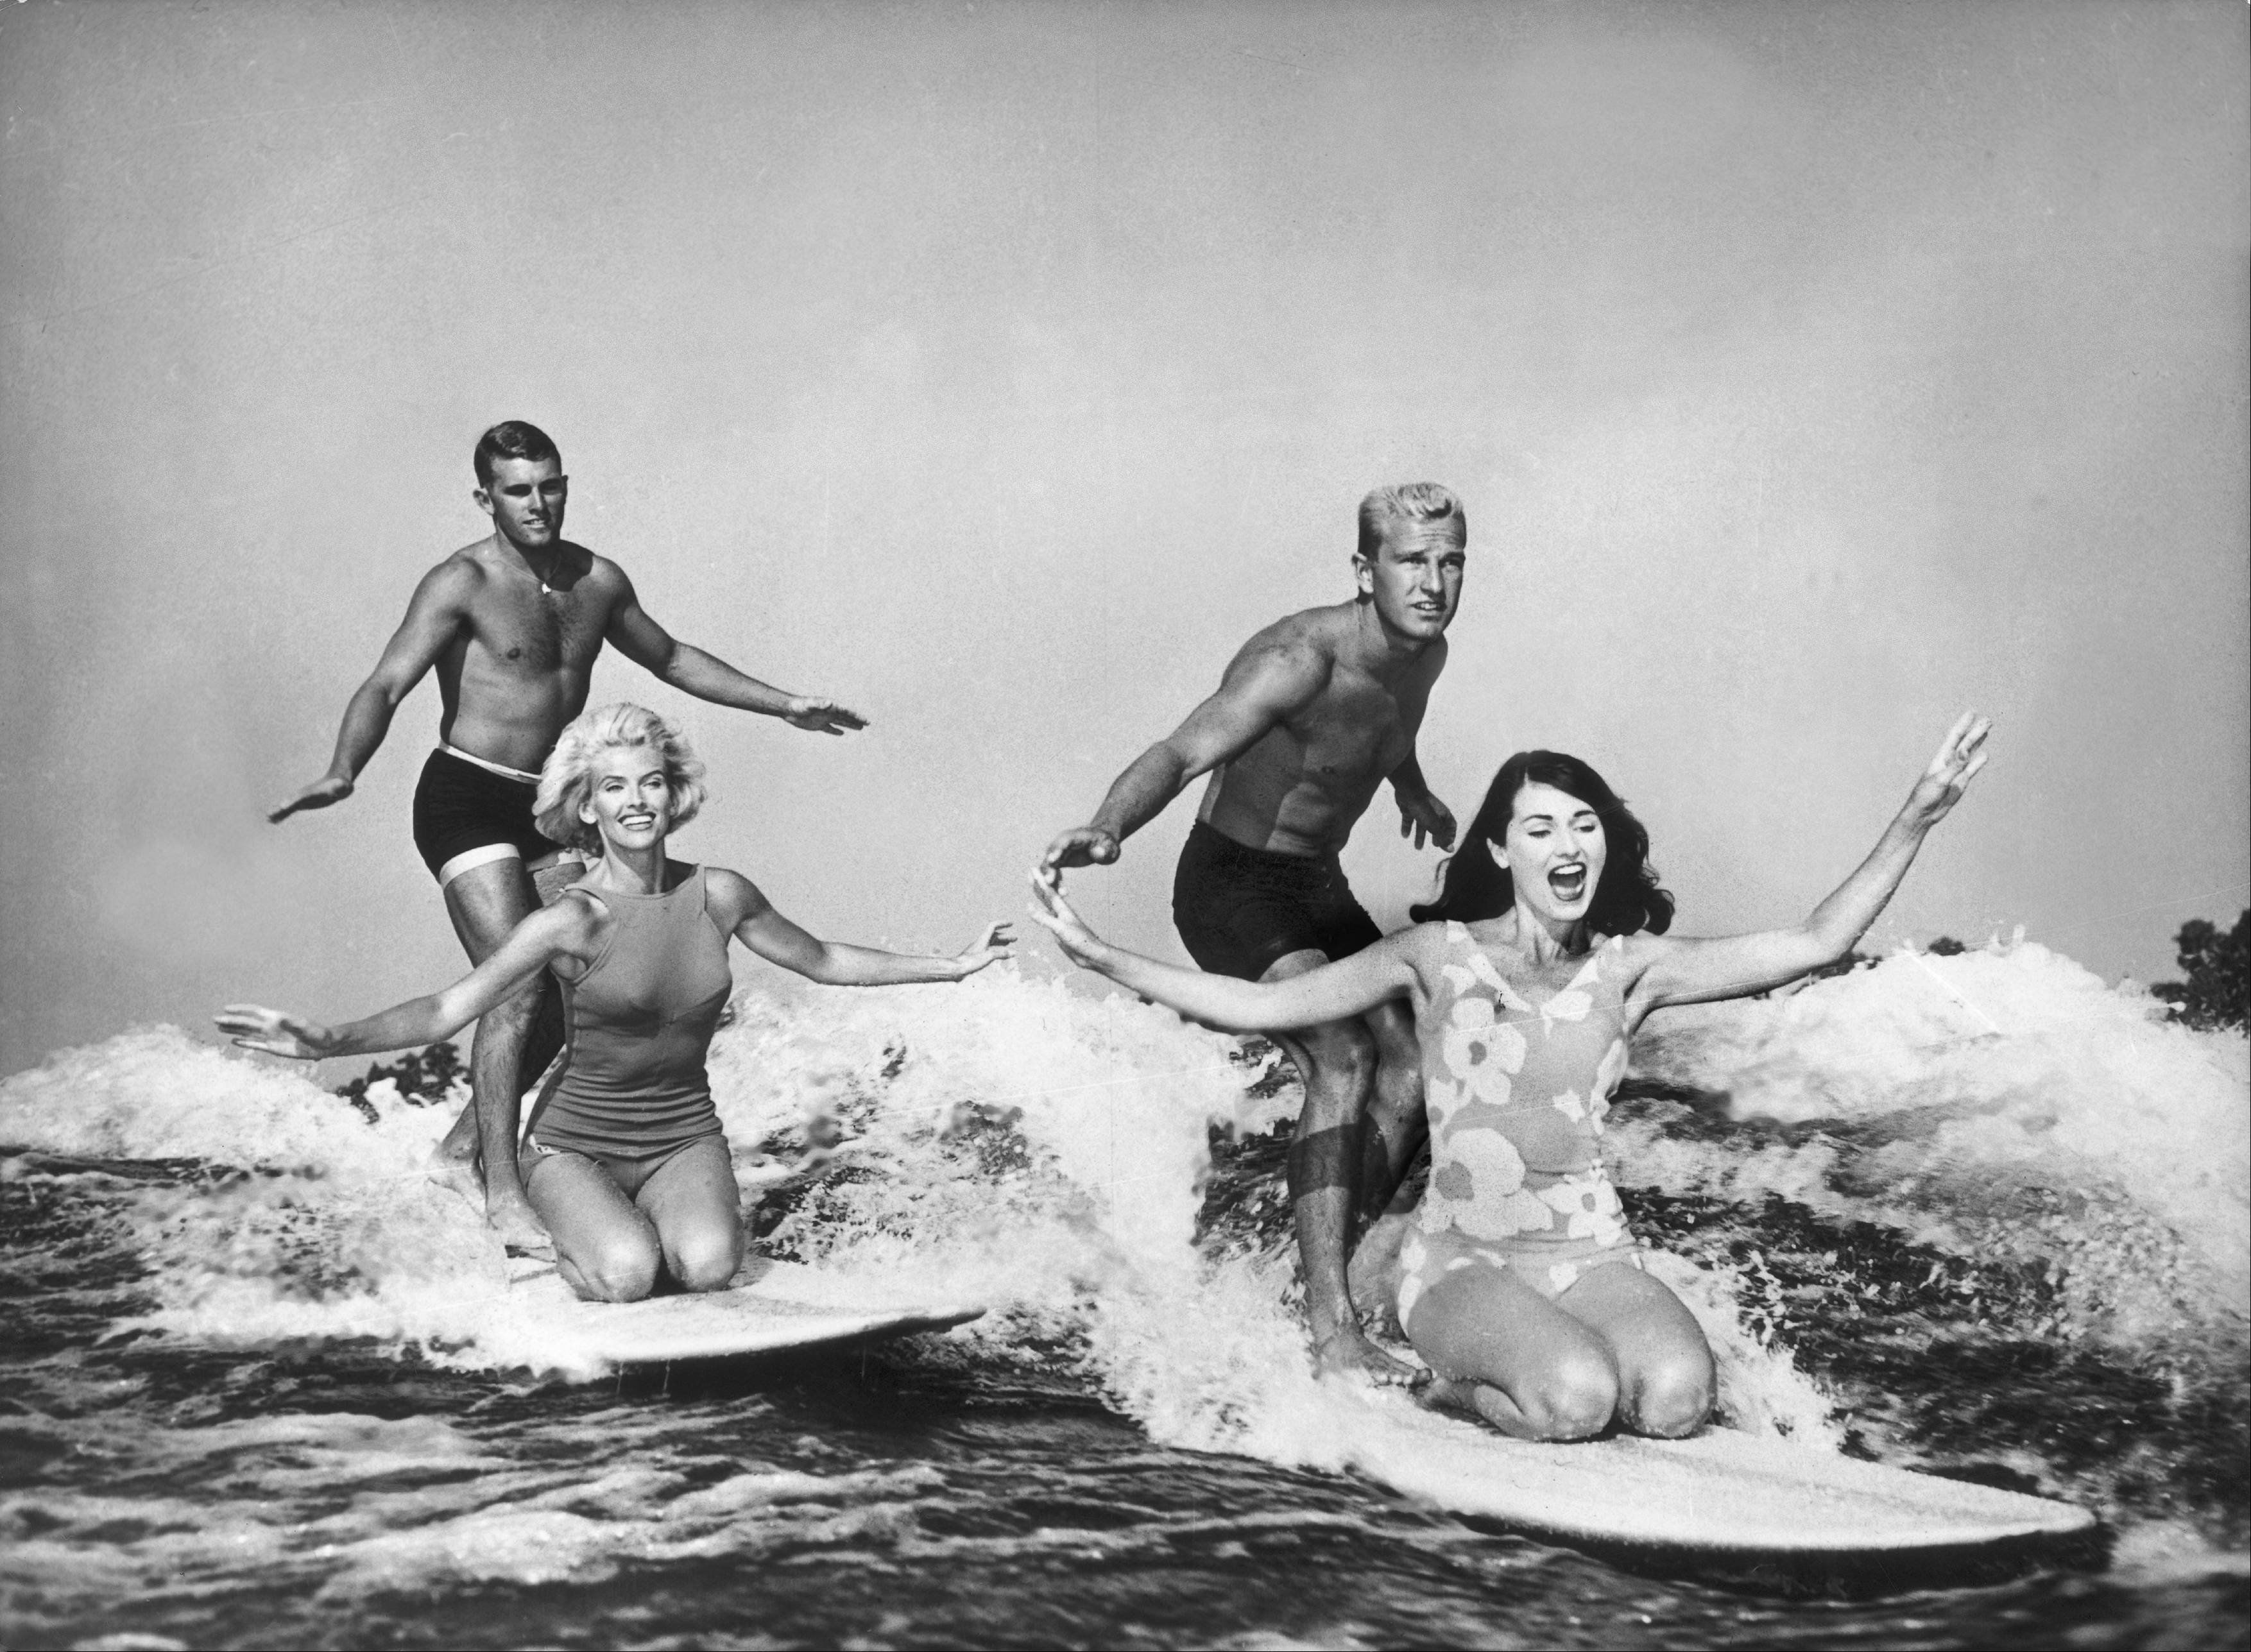 Water ski champions demonstrating their skills as they ride the wake of a boatwithout a tow-line in California.(1